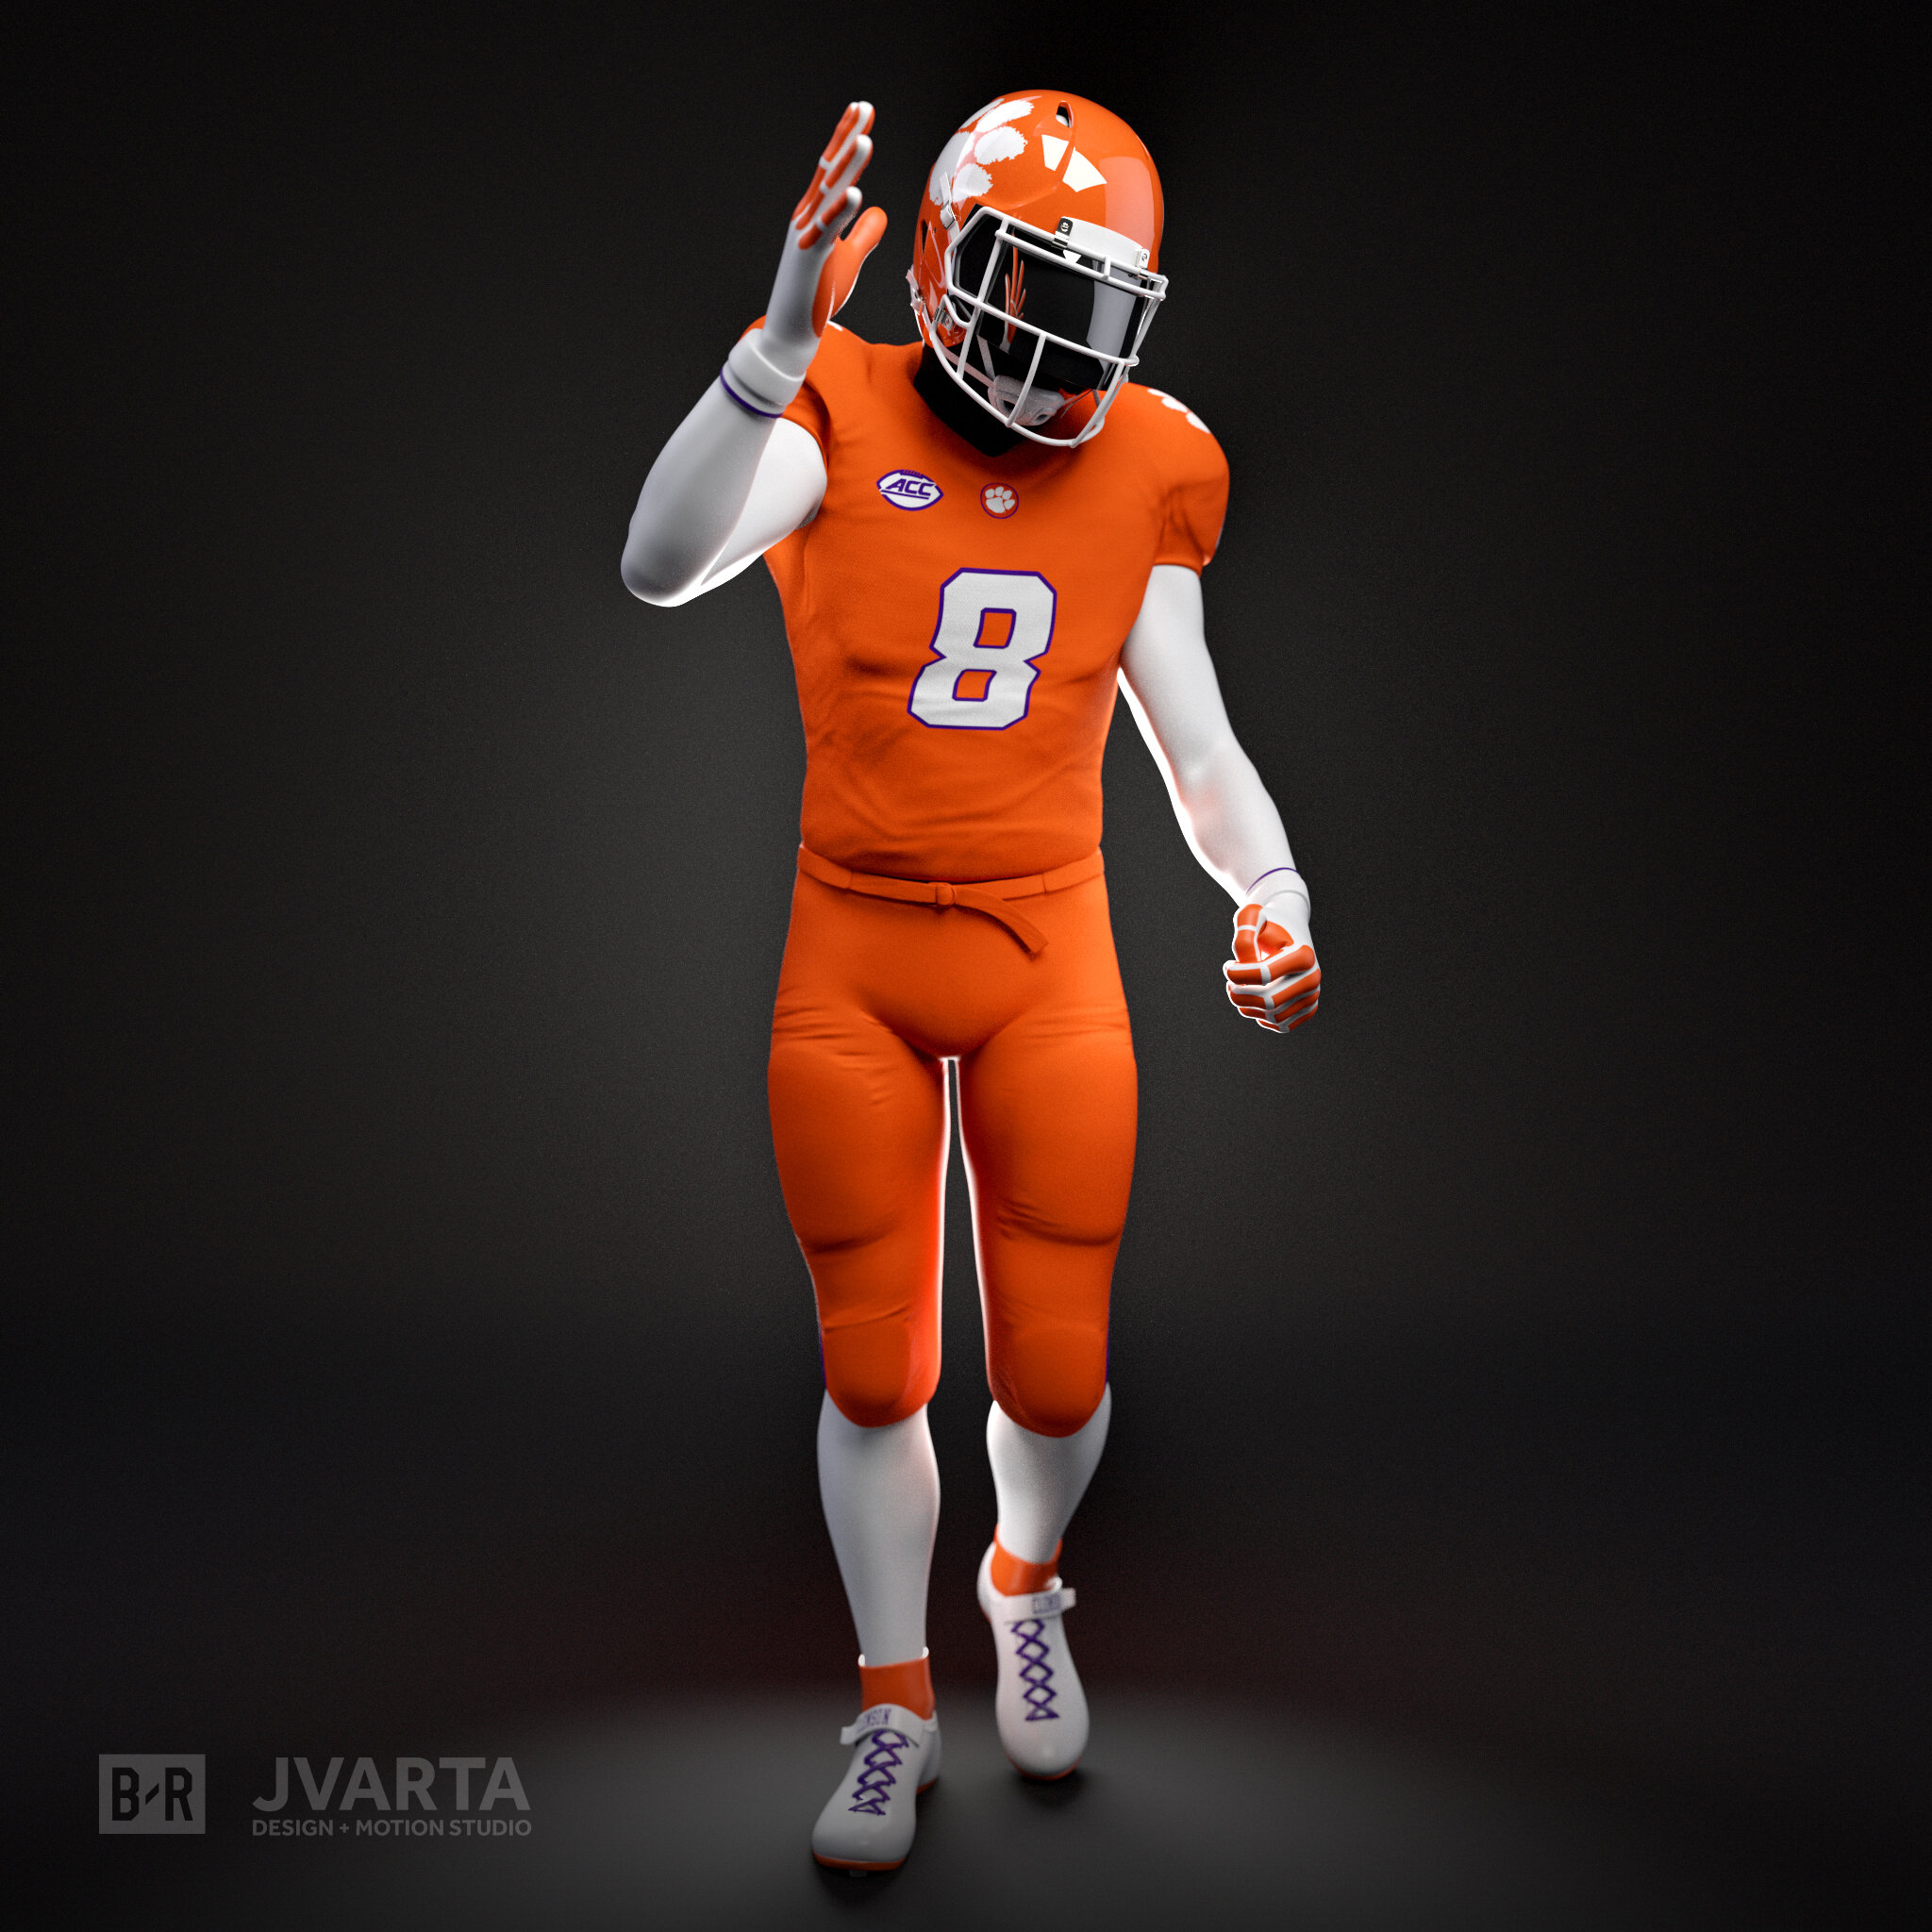 Breakdown - Here's a breakdown of how we created the CG football players for the 360/VR experience with Bleacher Report.